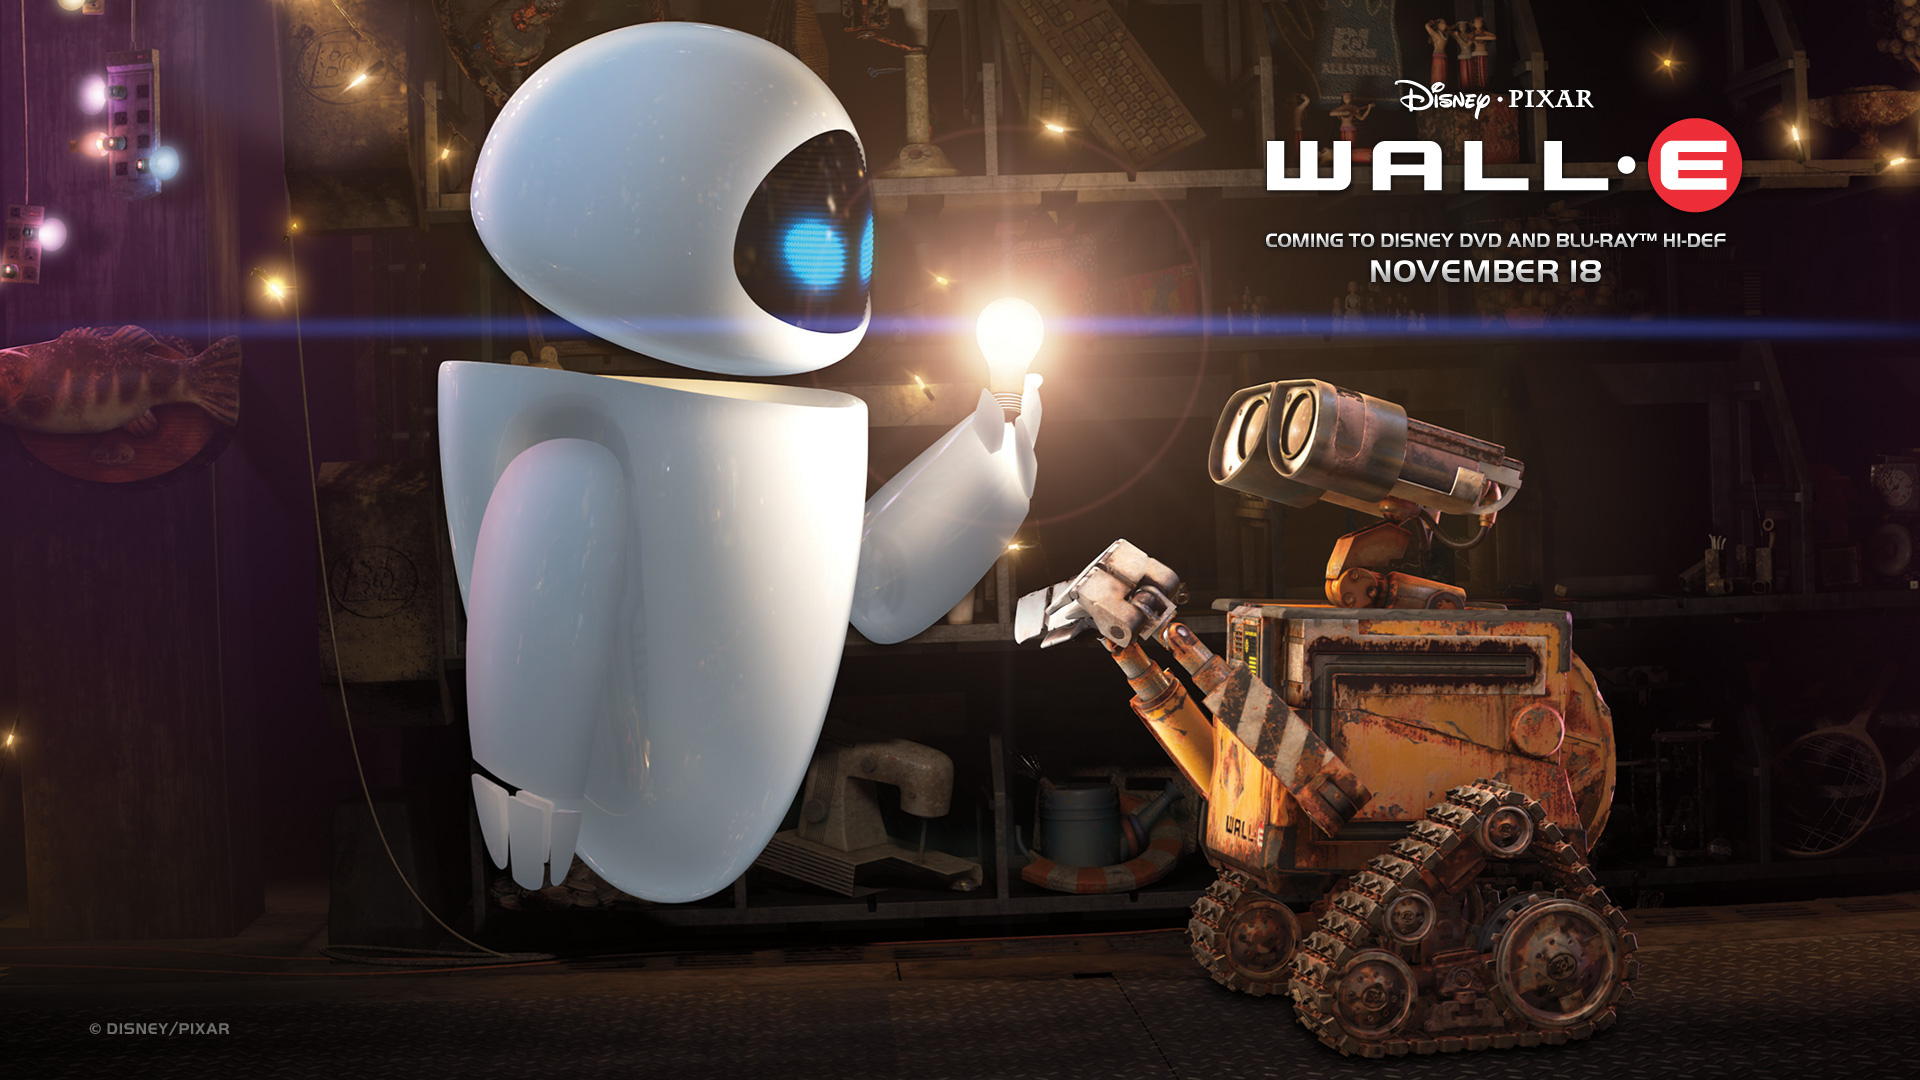 Walle eve picture